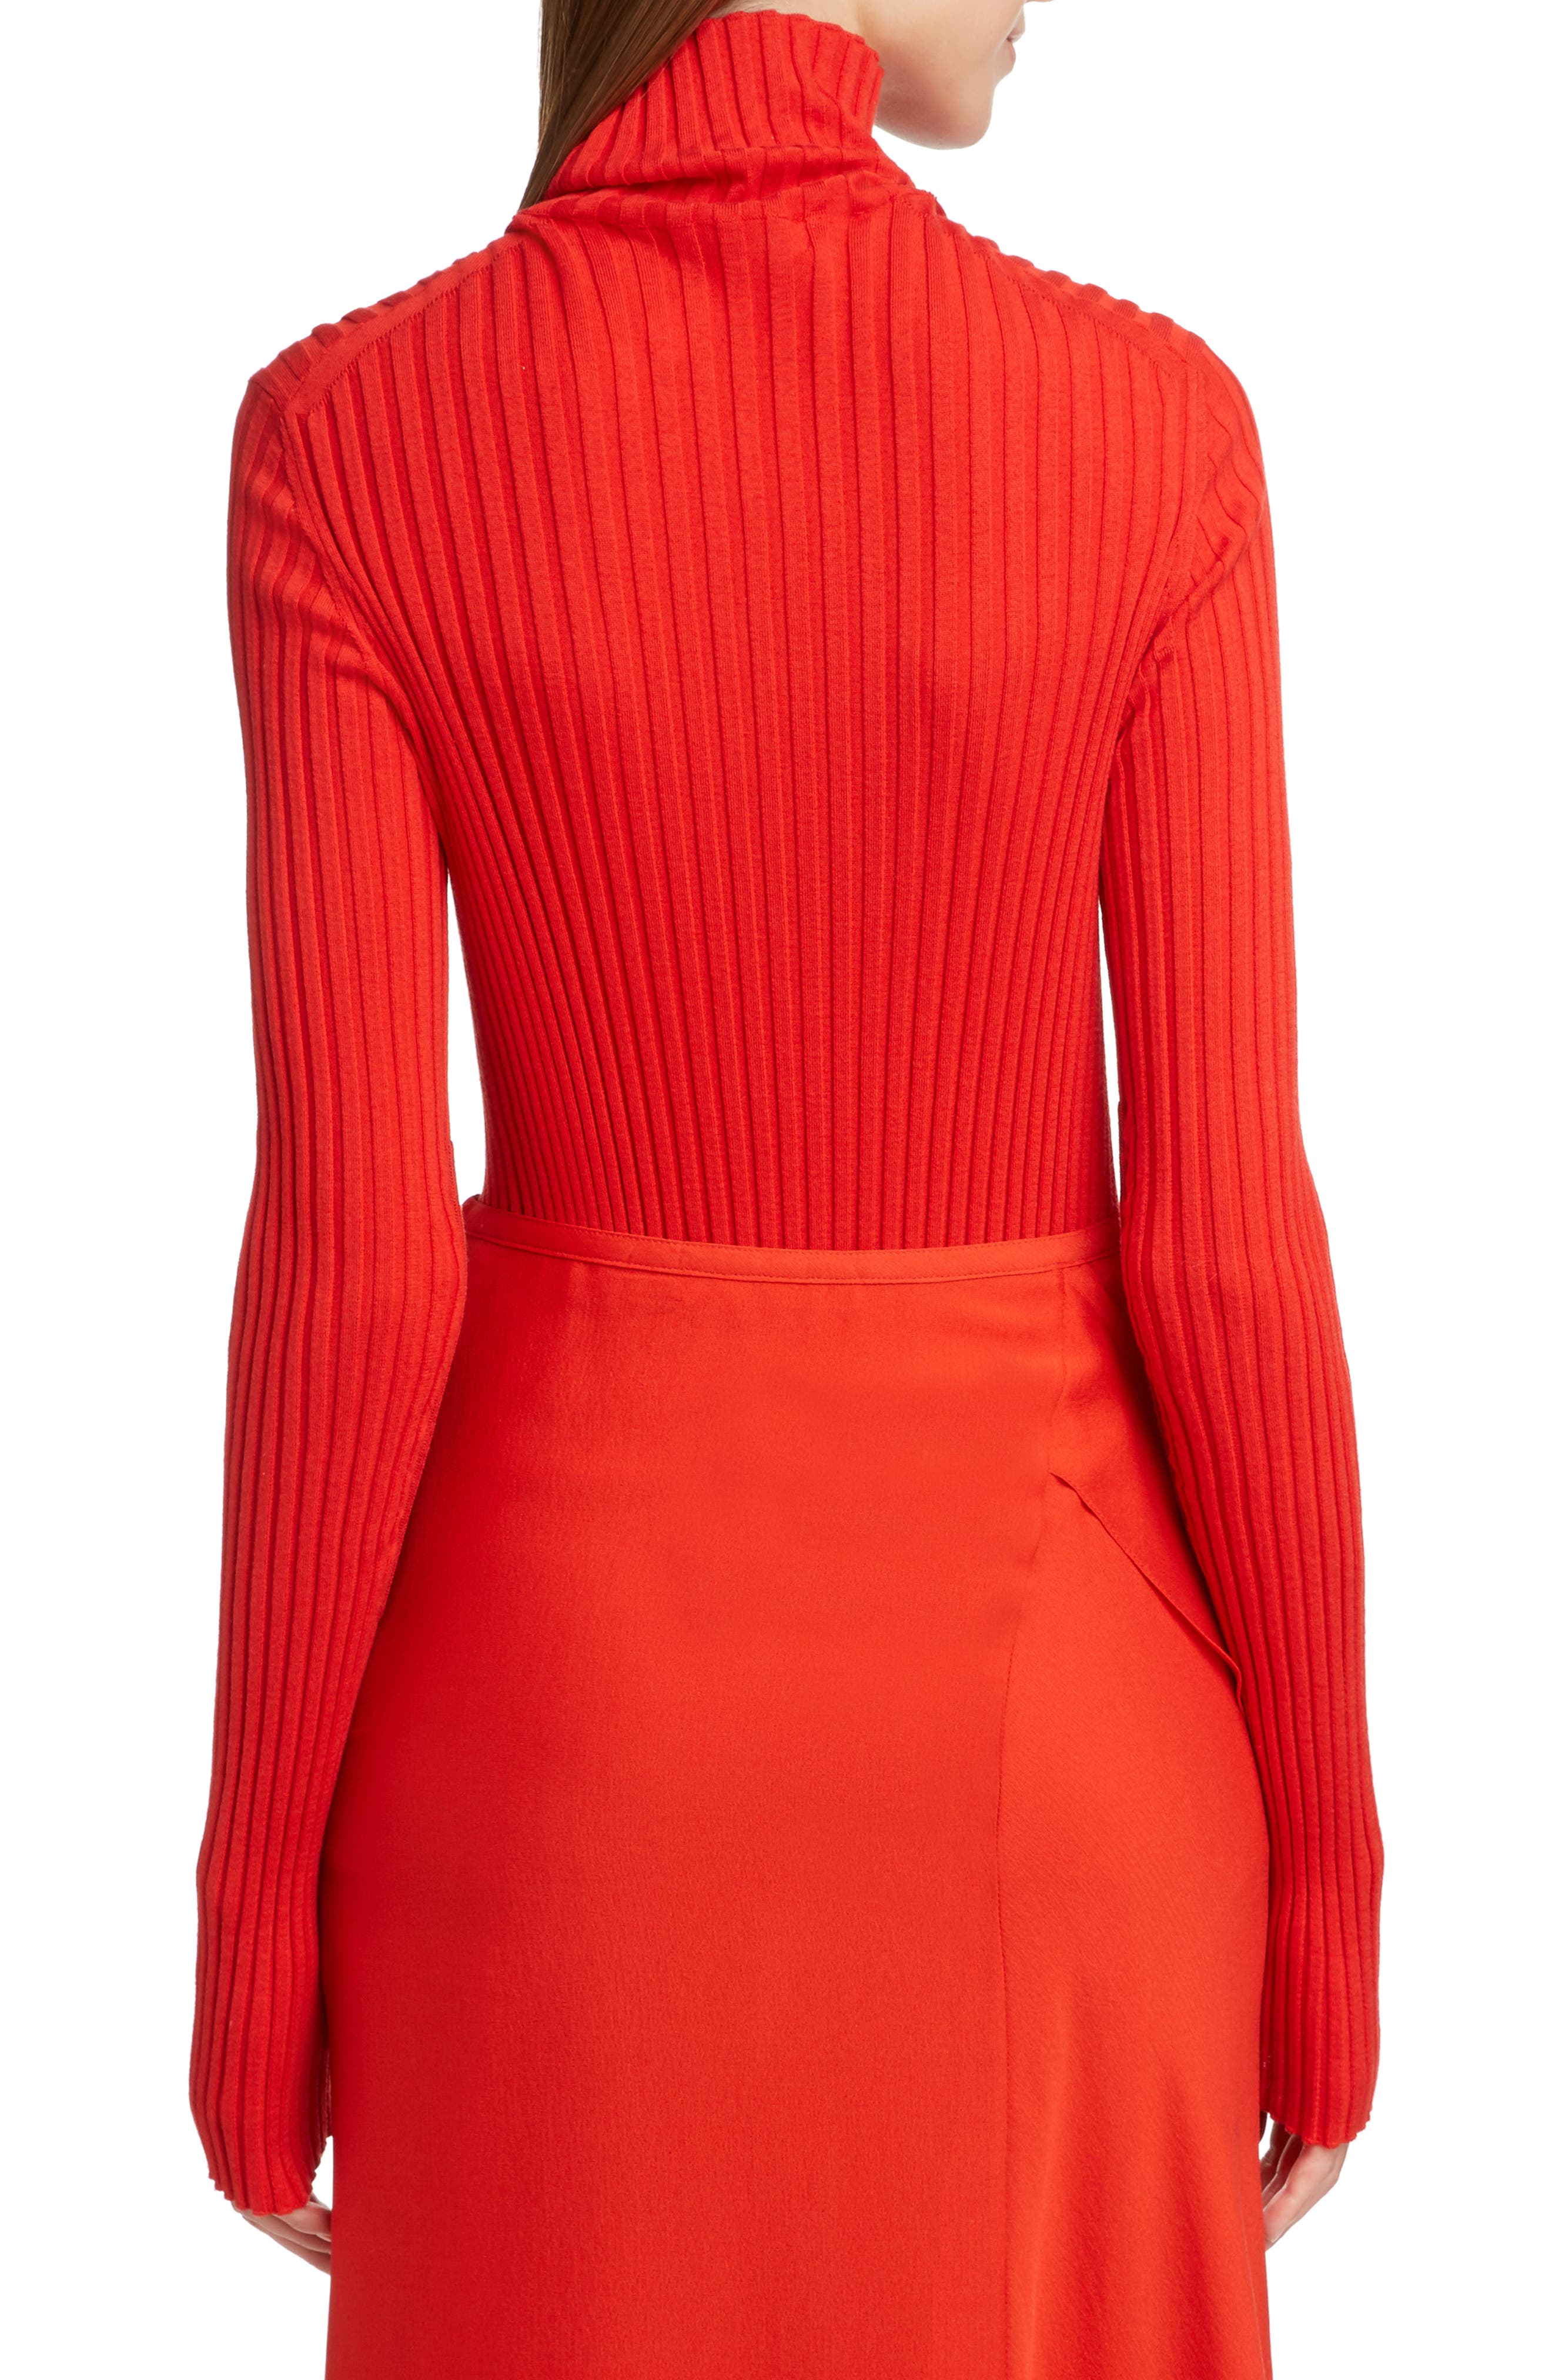 VICTORIA BECKHAM, Gathered Sleeve Rib Knit Turtleneck Sweater, Alternate thumbnail 2, color, BRIGHT RED